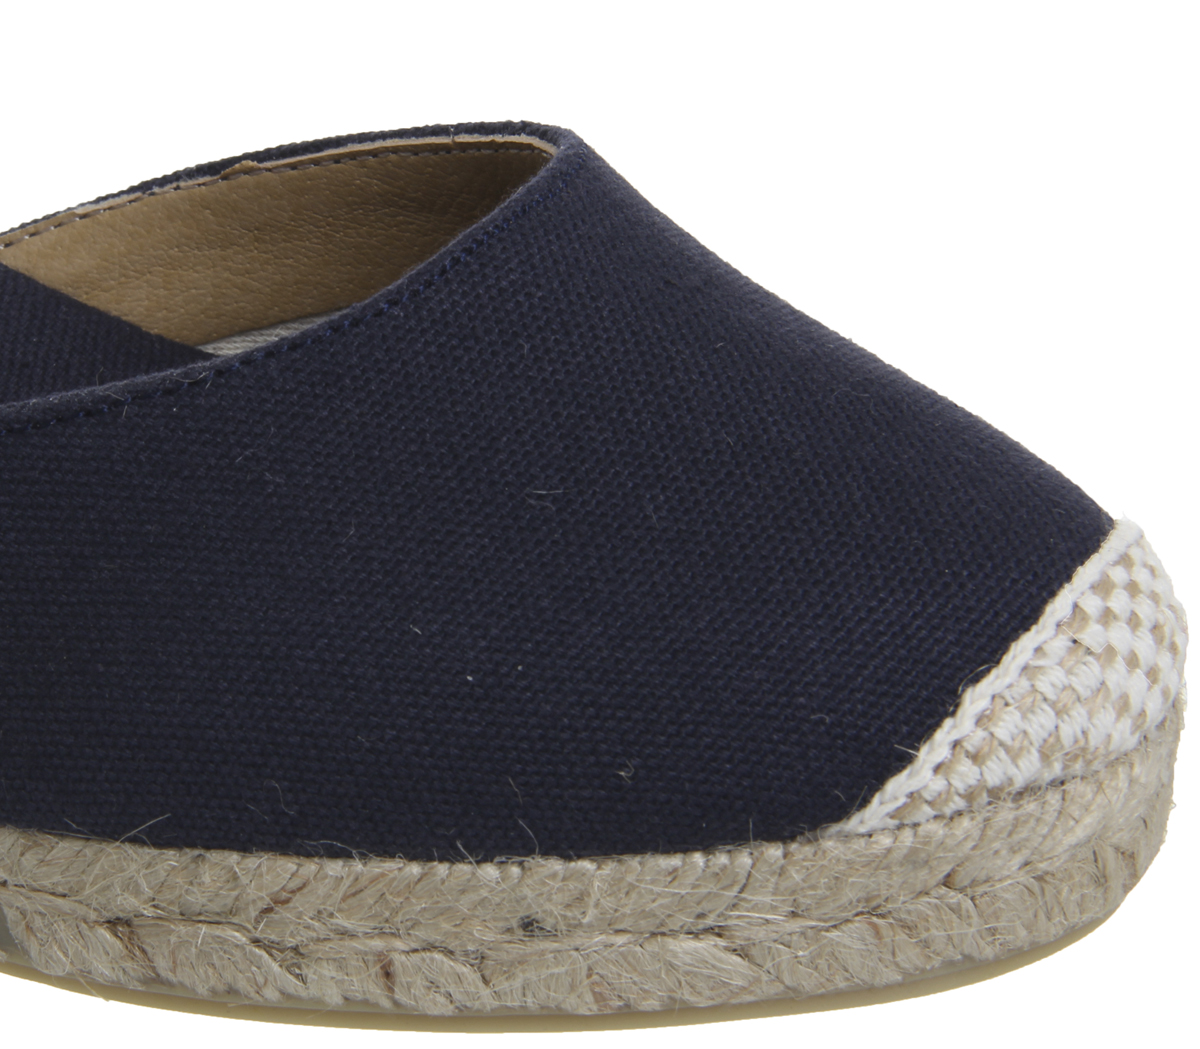 Womens-Office-Mini-Tie-Up-Two-Part-Espadrilles-Navy-Canvas-Heels